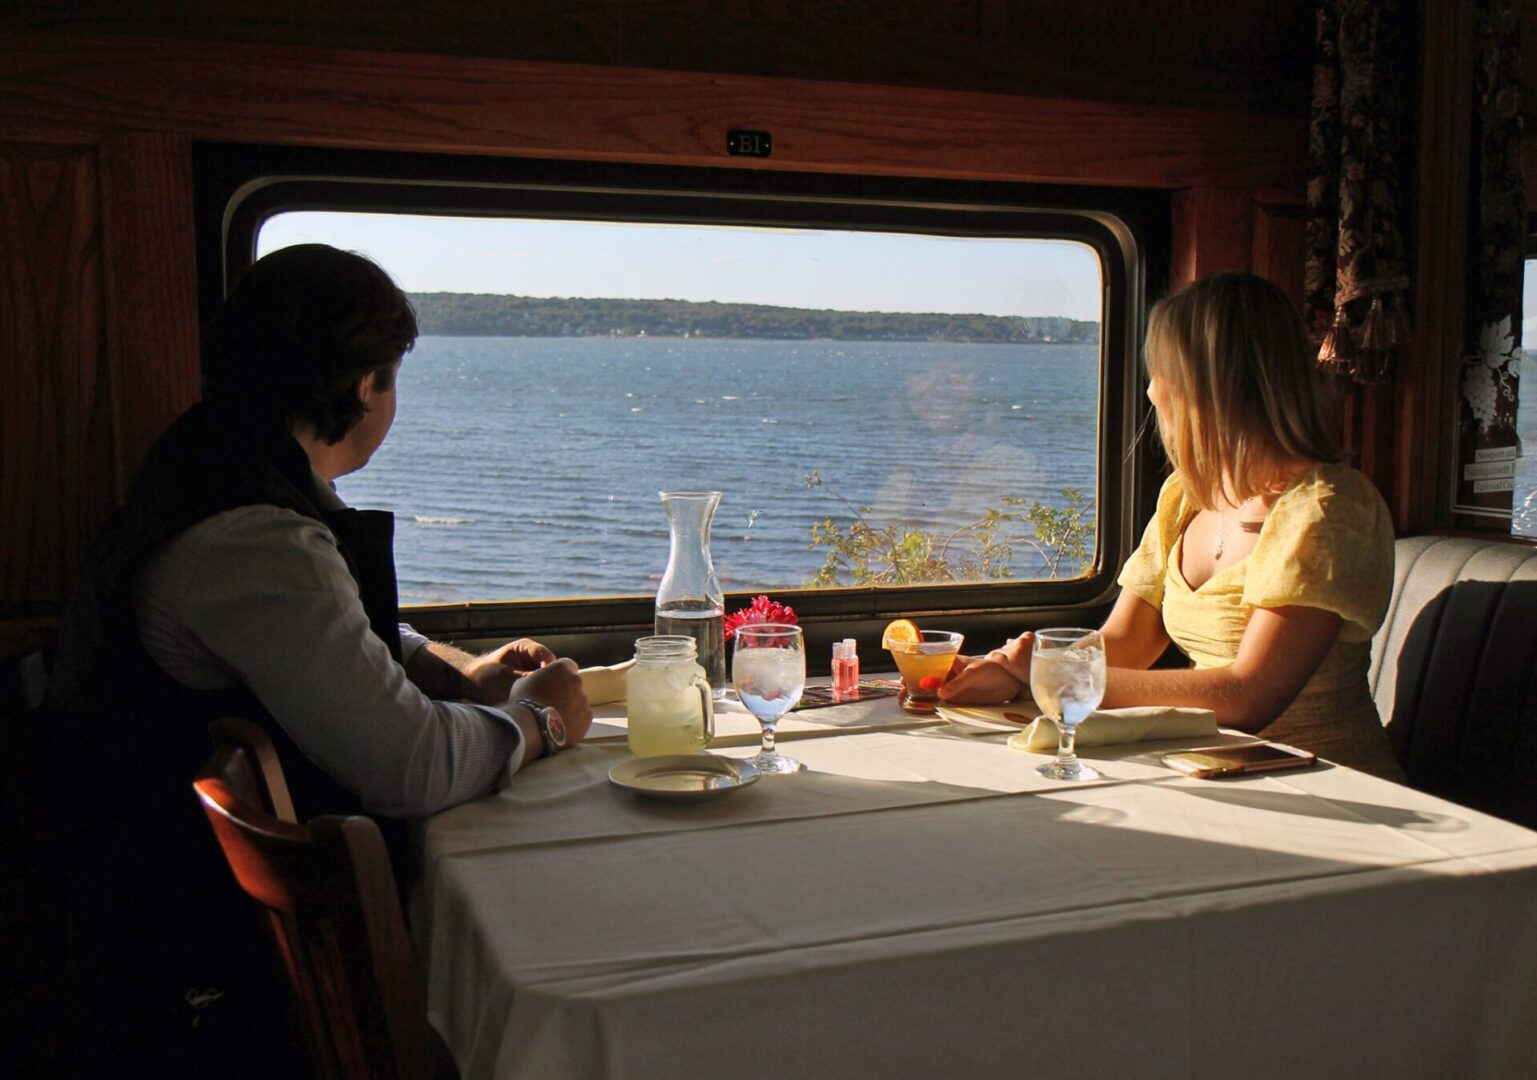 diners enjoying the relaxing view at the Grand Bellevue train